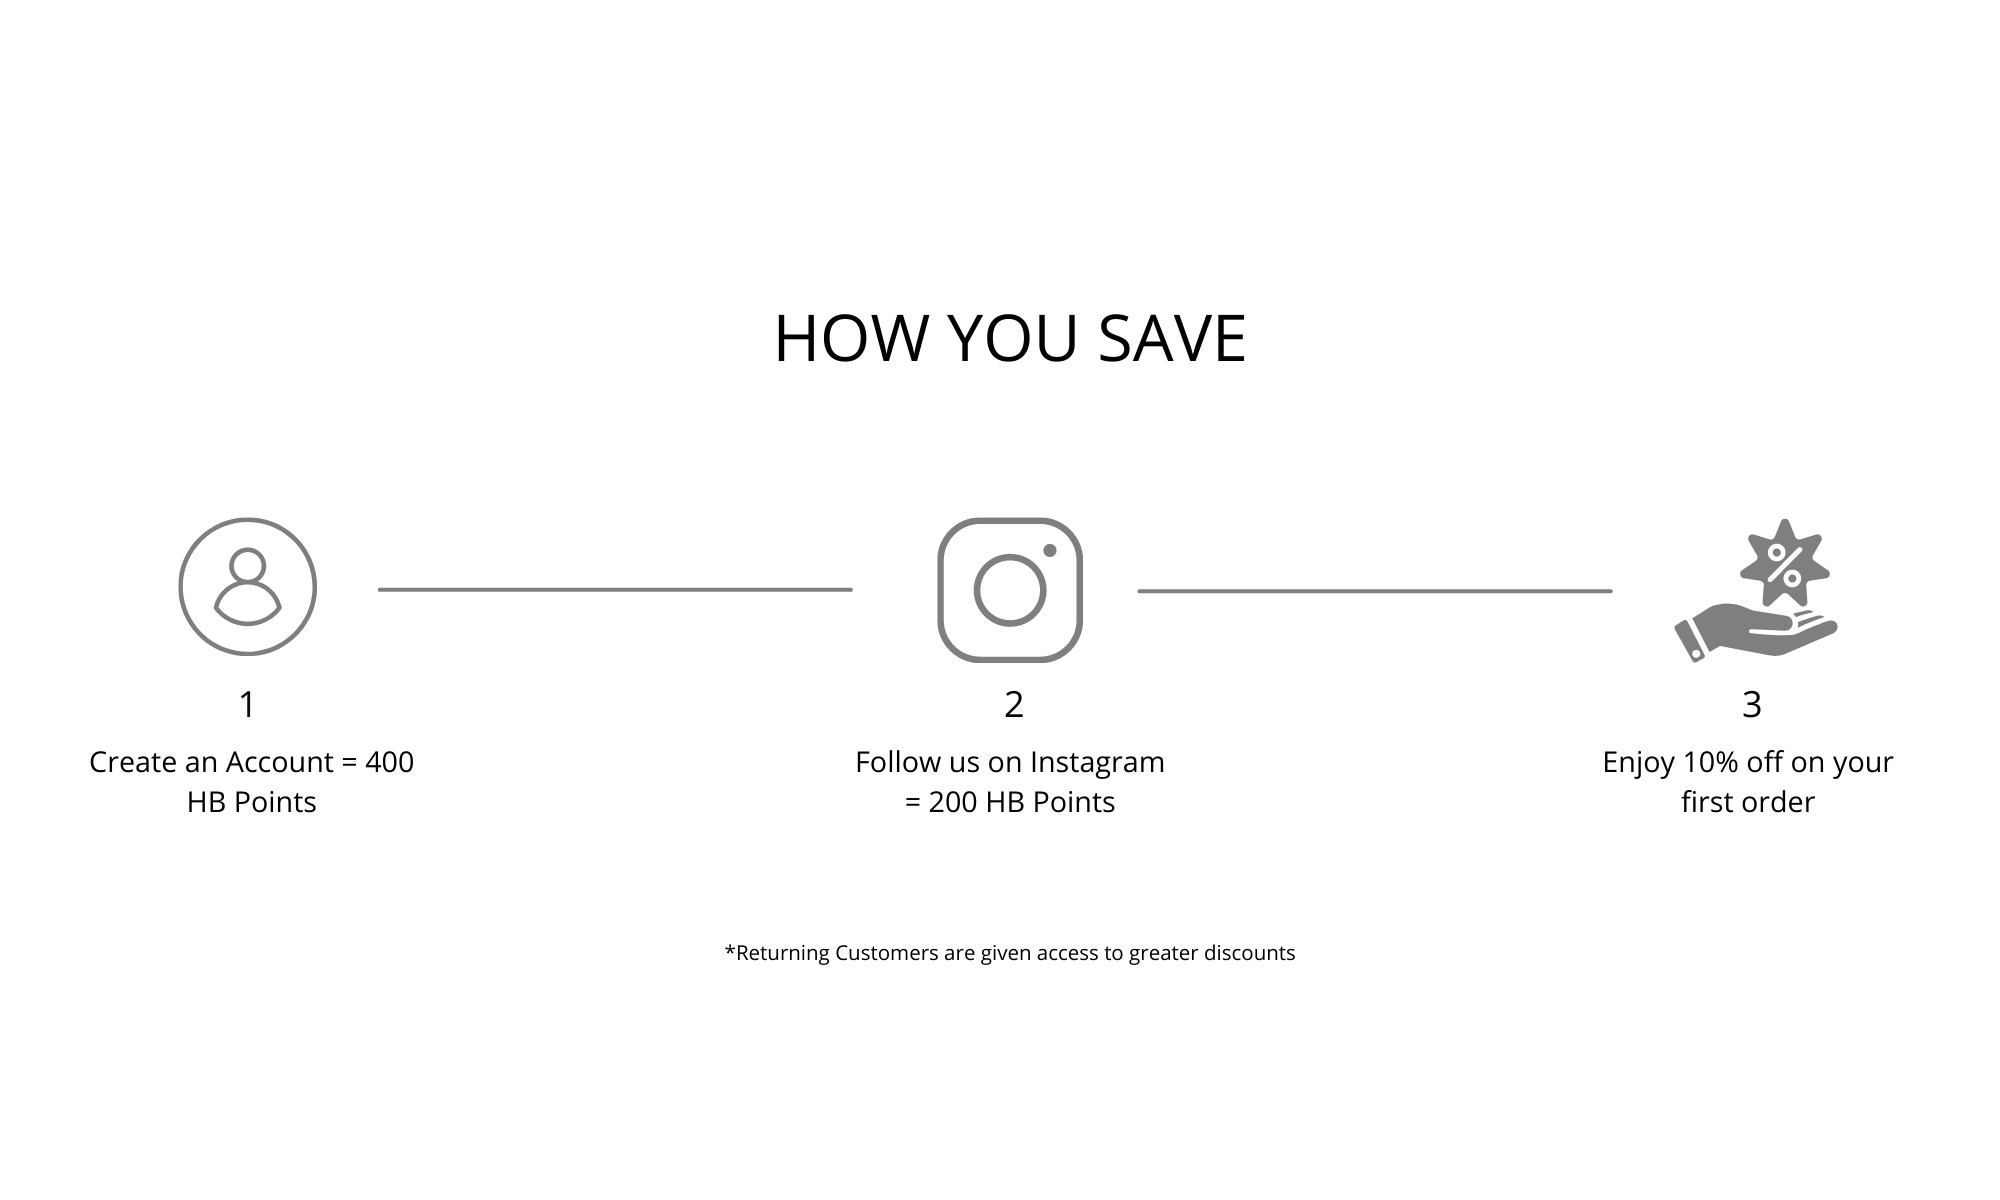 How You Save